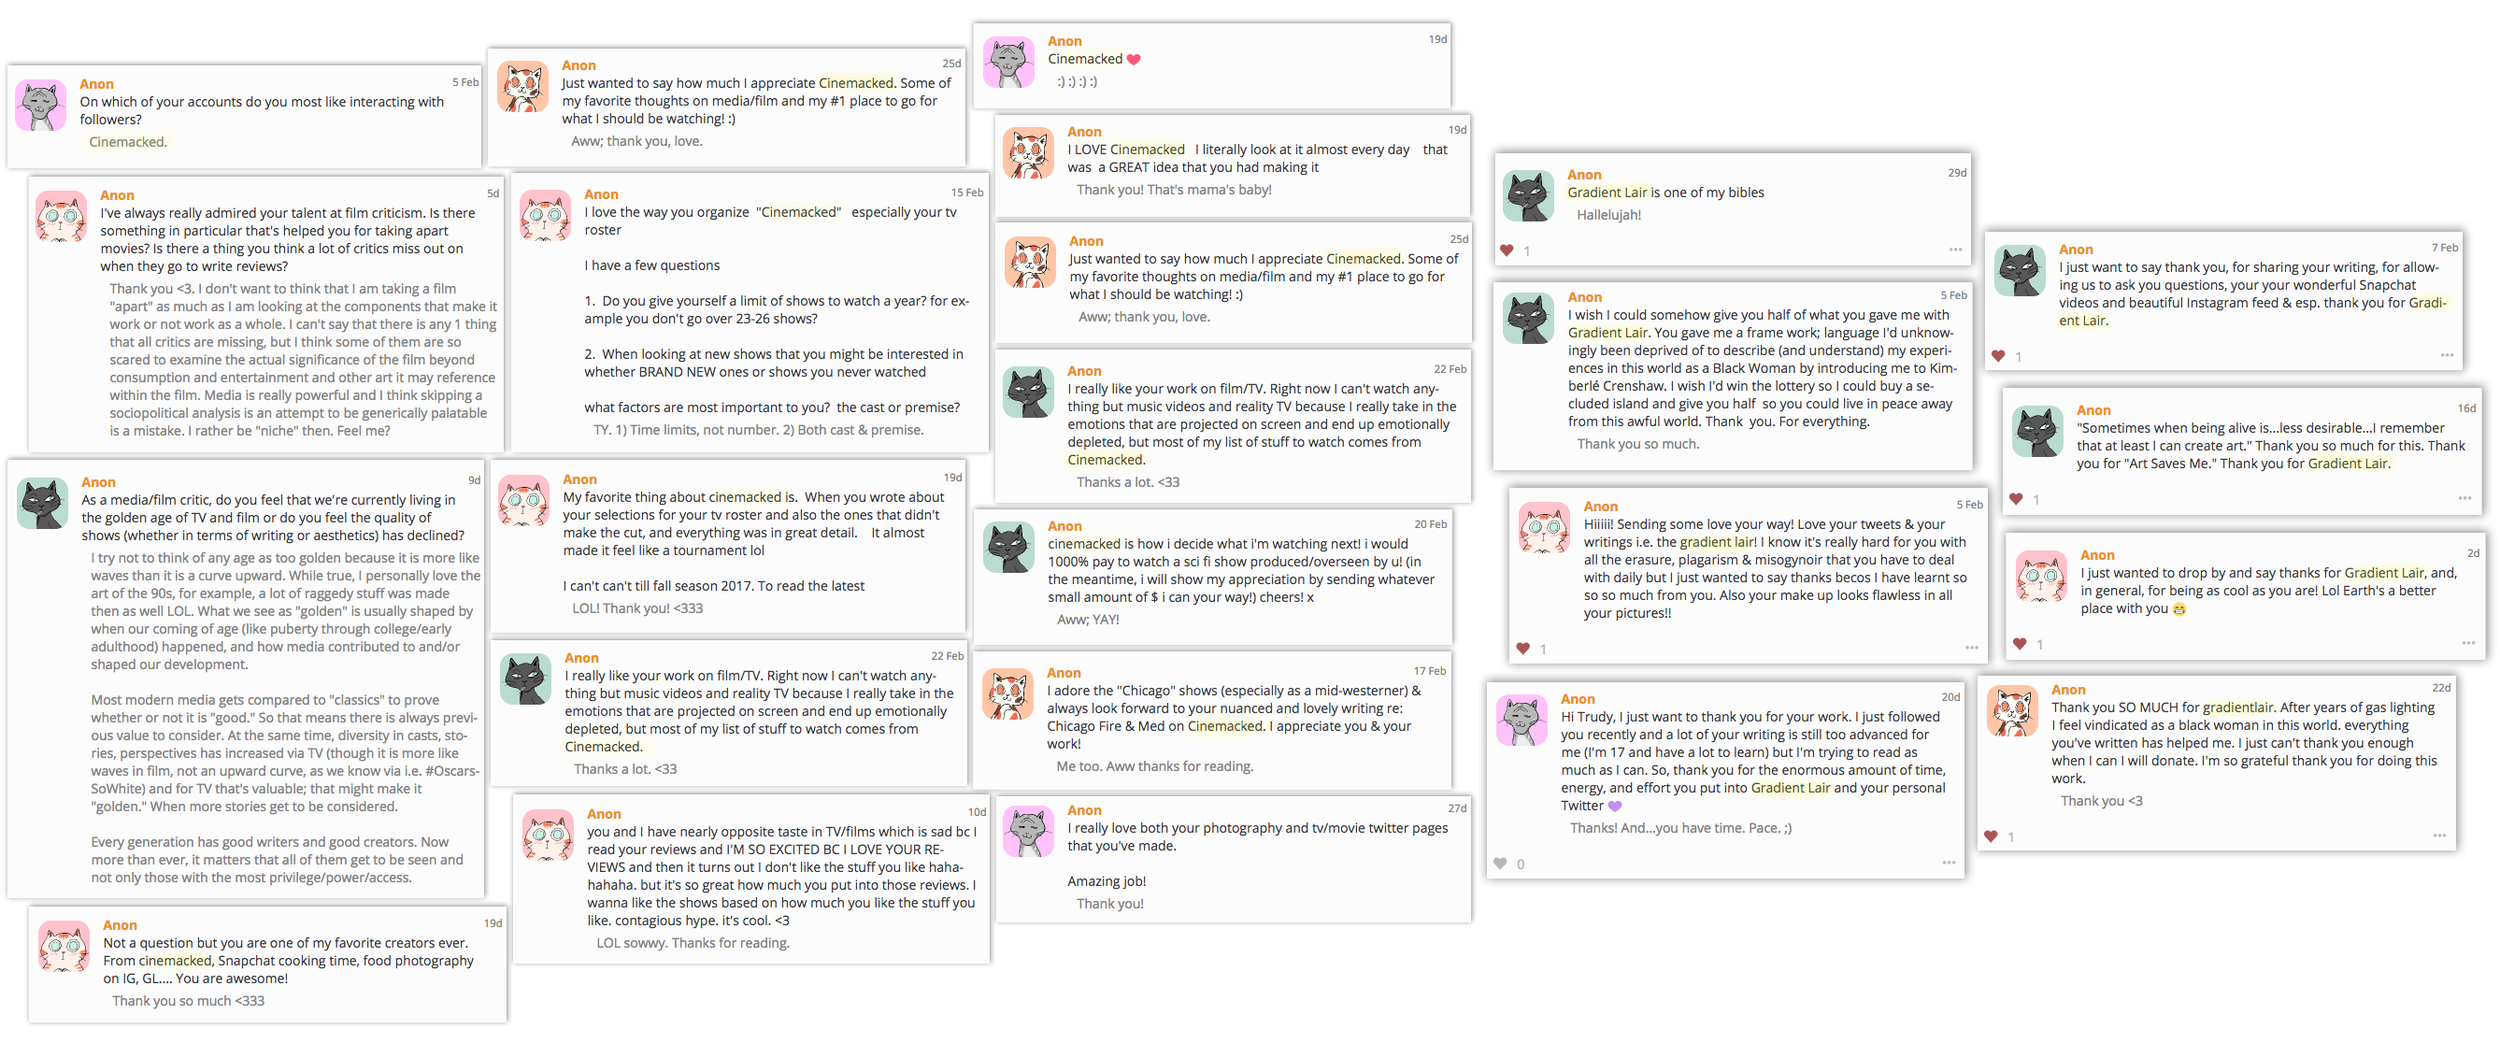 Some of my favorite past Curious Cat feedback on  Cinemacked  and  Gradient Lair .